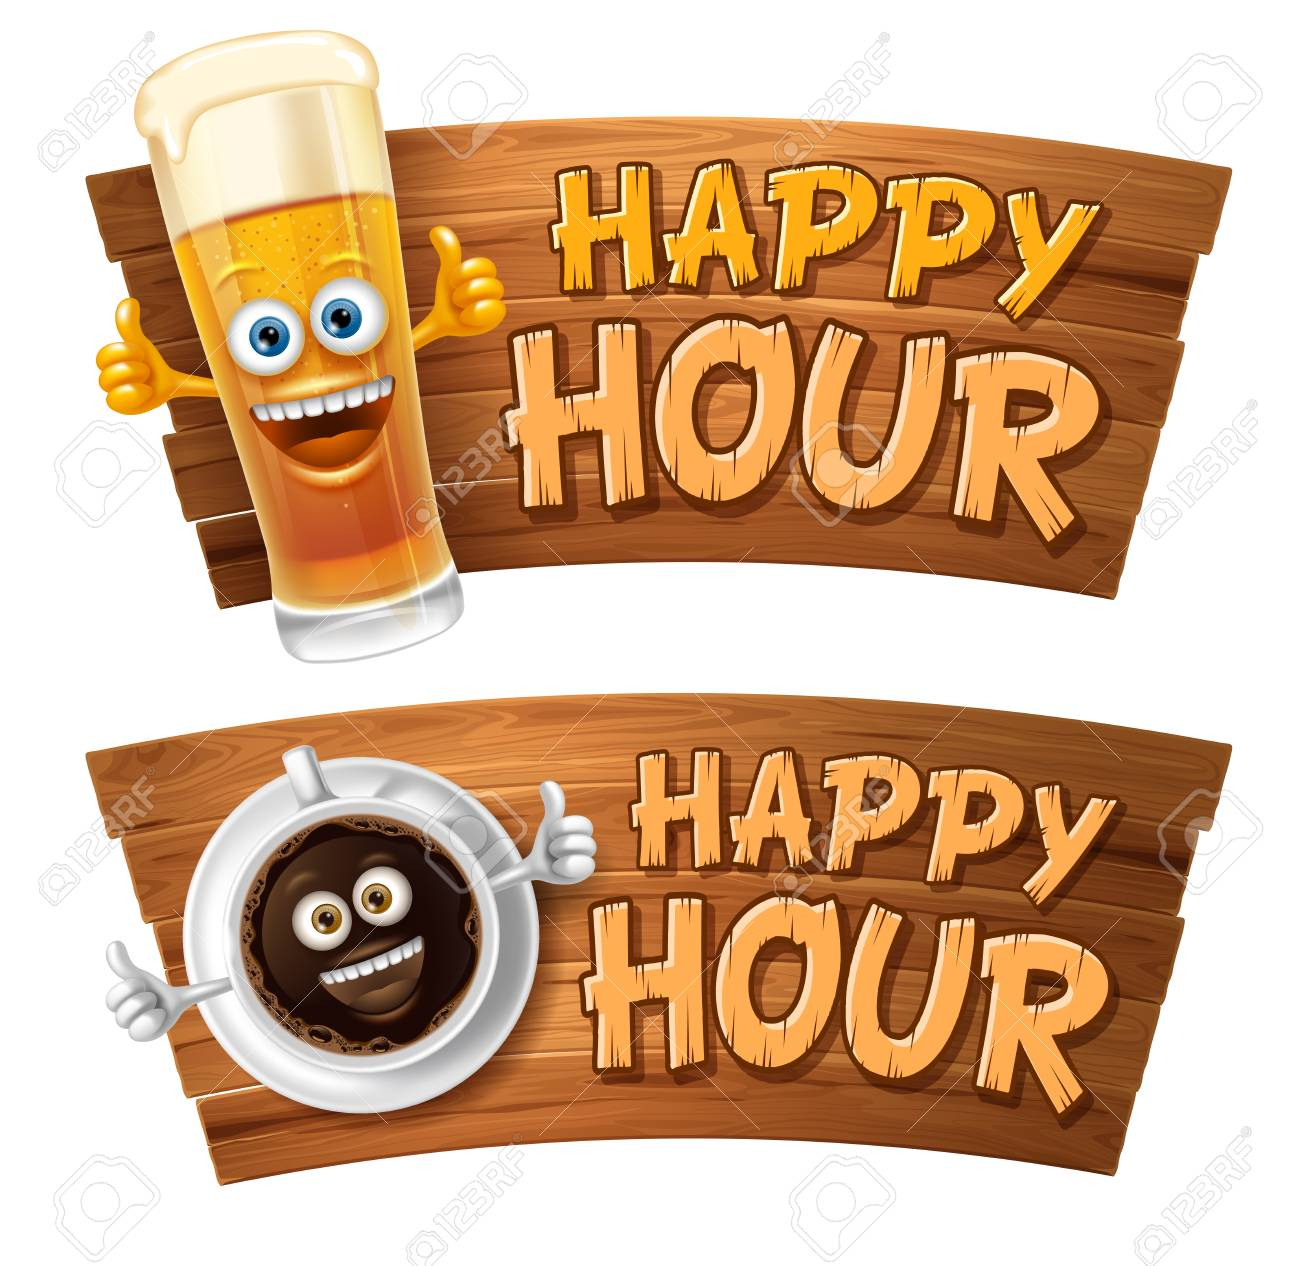 Happy Hour. Vintage vector illustration with lettering and cute cheerful coffee cup or beer glass on wooden signboard. Isolated on white background. - 102522970